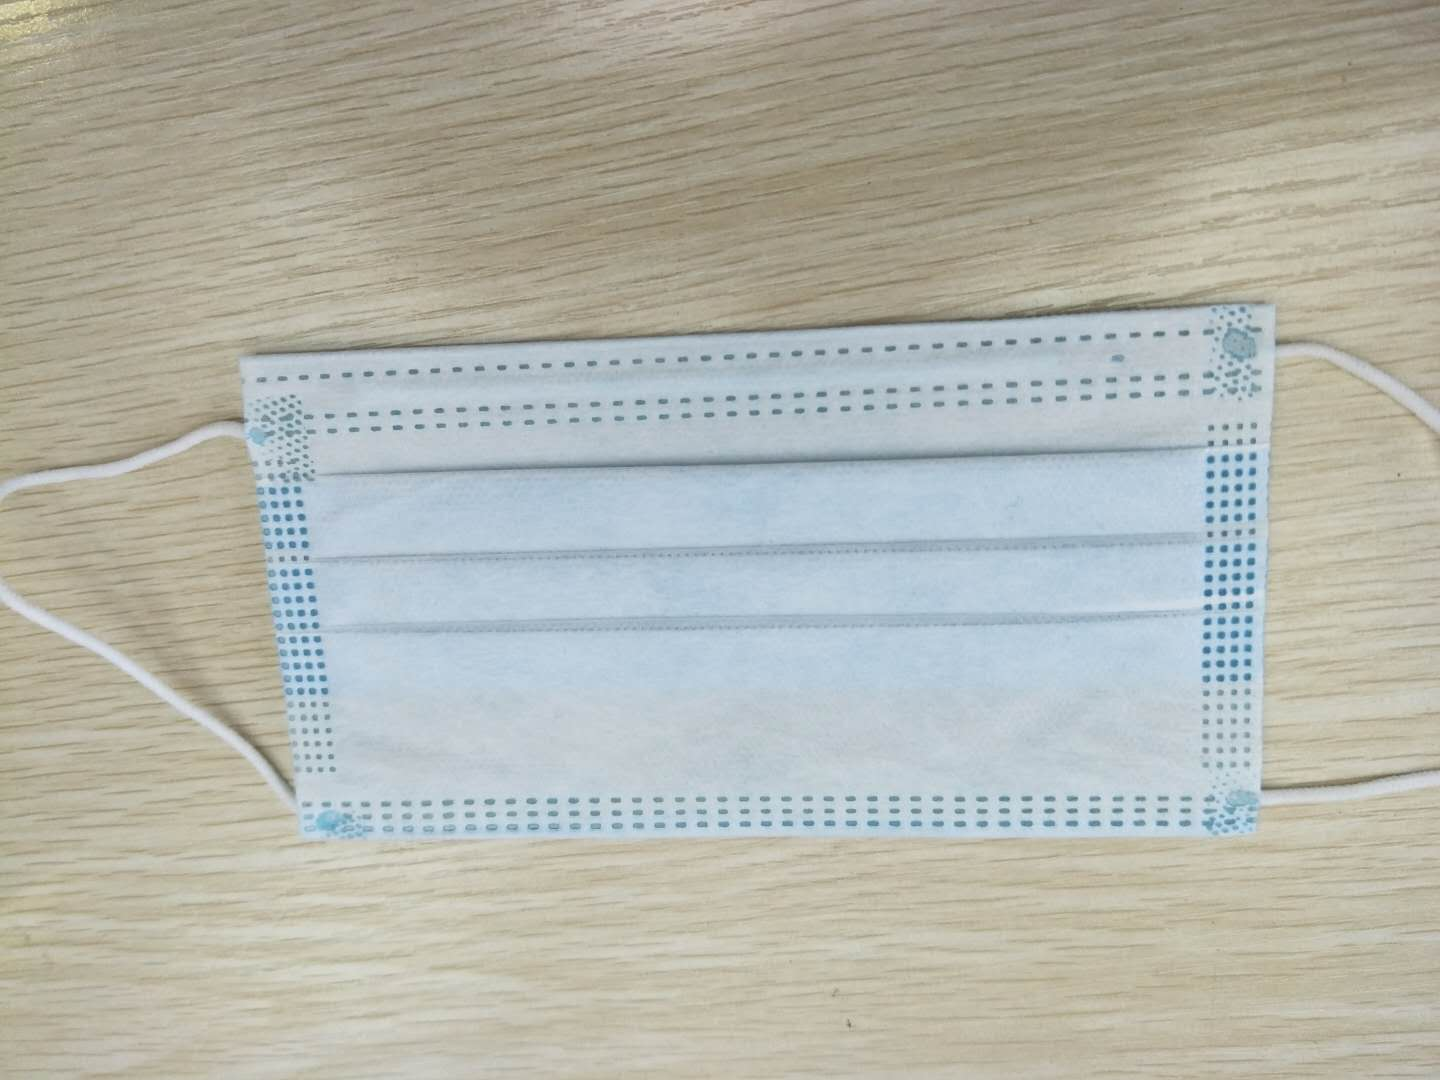 Wholesale of disposable mask manufacturers